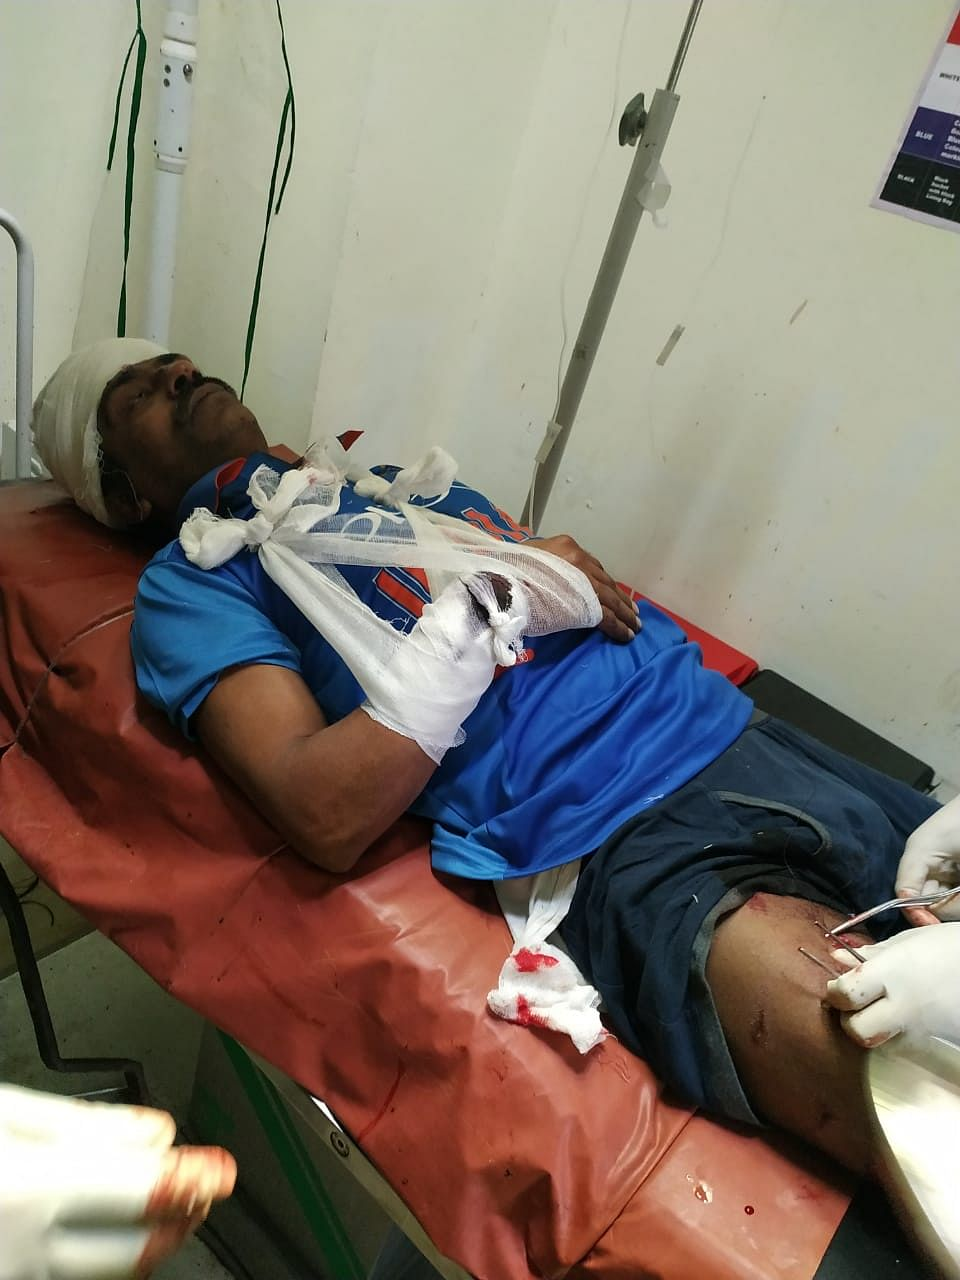 The injured man was admitted to the STNM Hospital in Gangtok